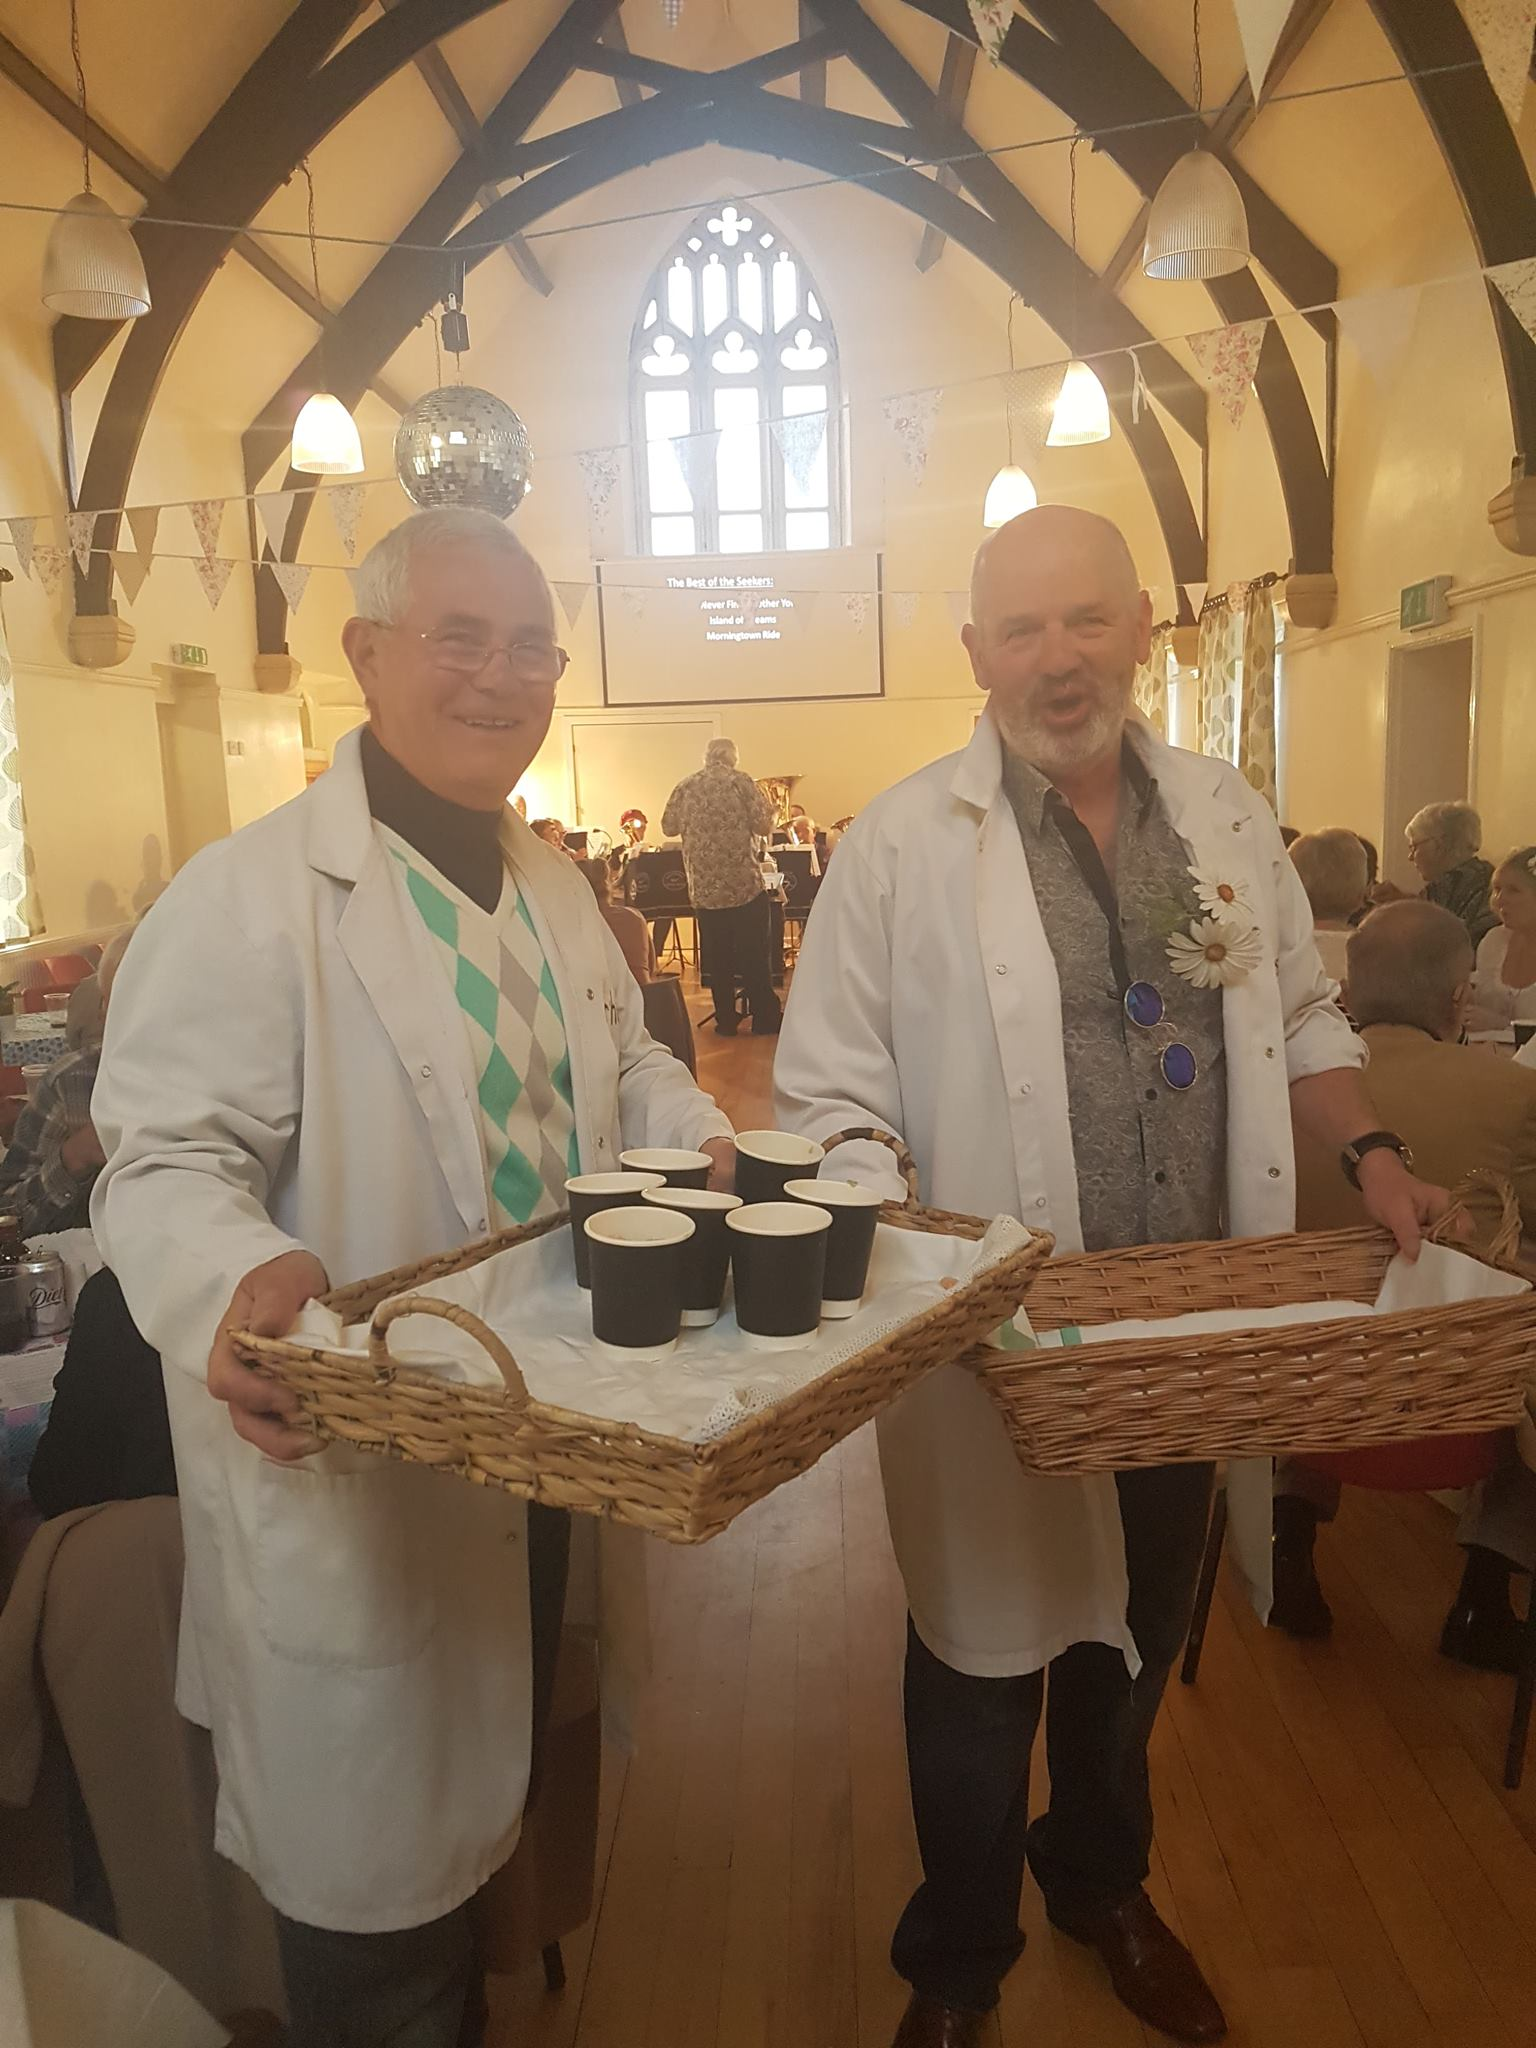 2 men in white coats hold trays with small pots of prawn cocktail